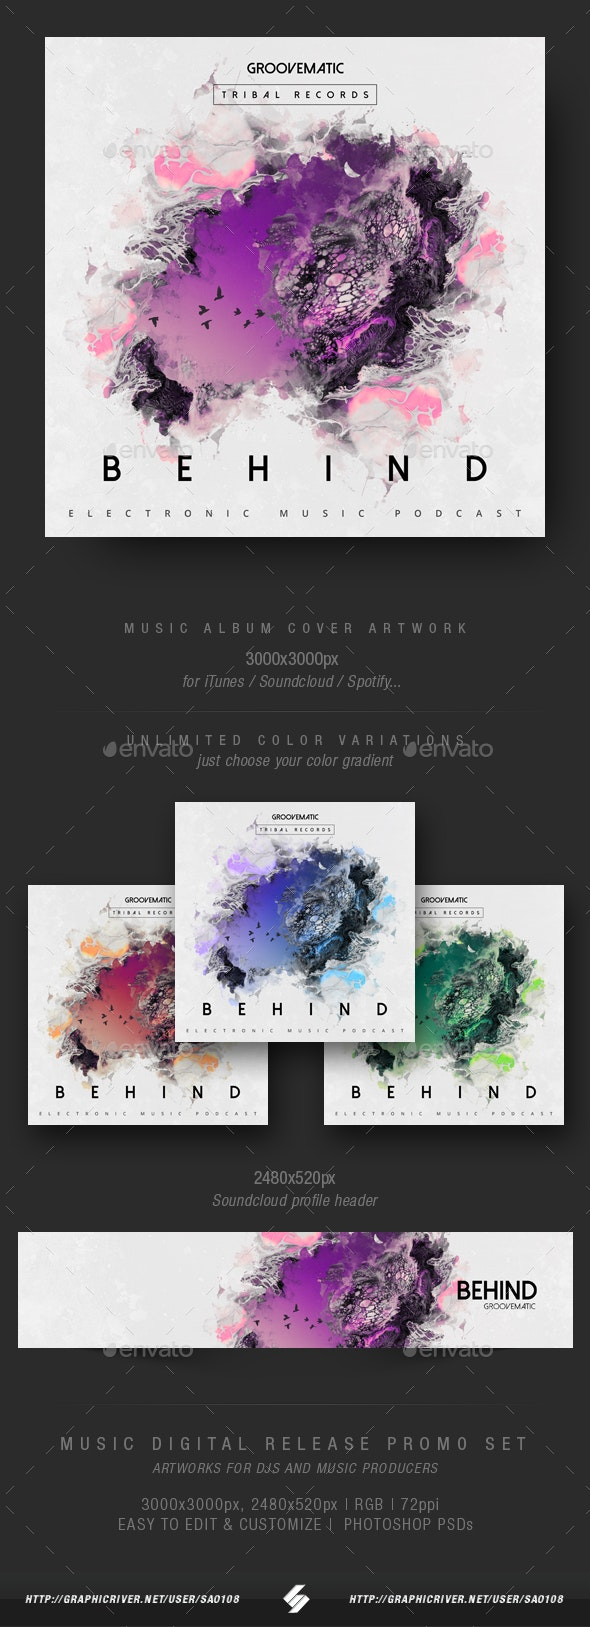 Behind - Music Album Cover Artwork Template - Miscellaneous Social Media